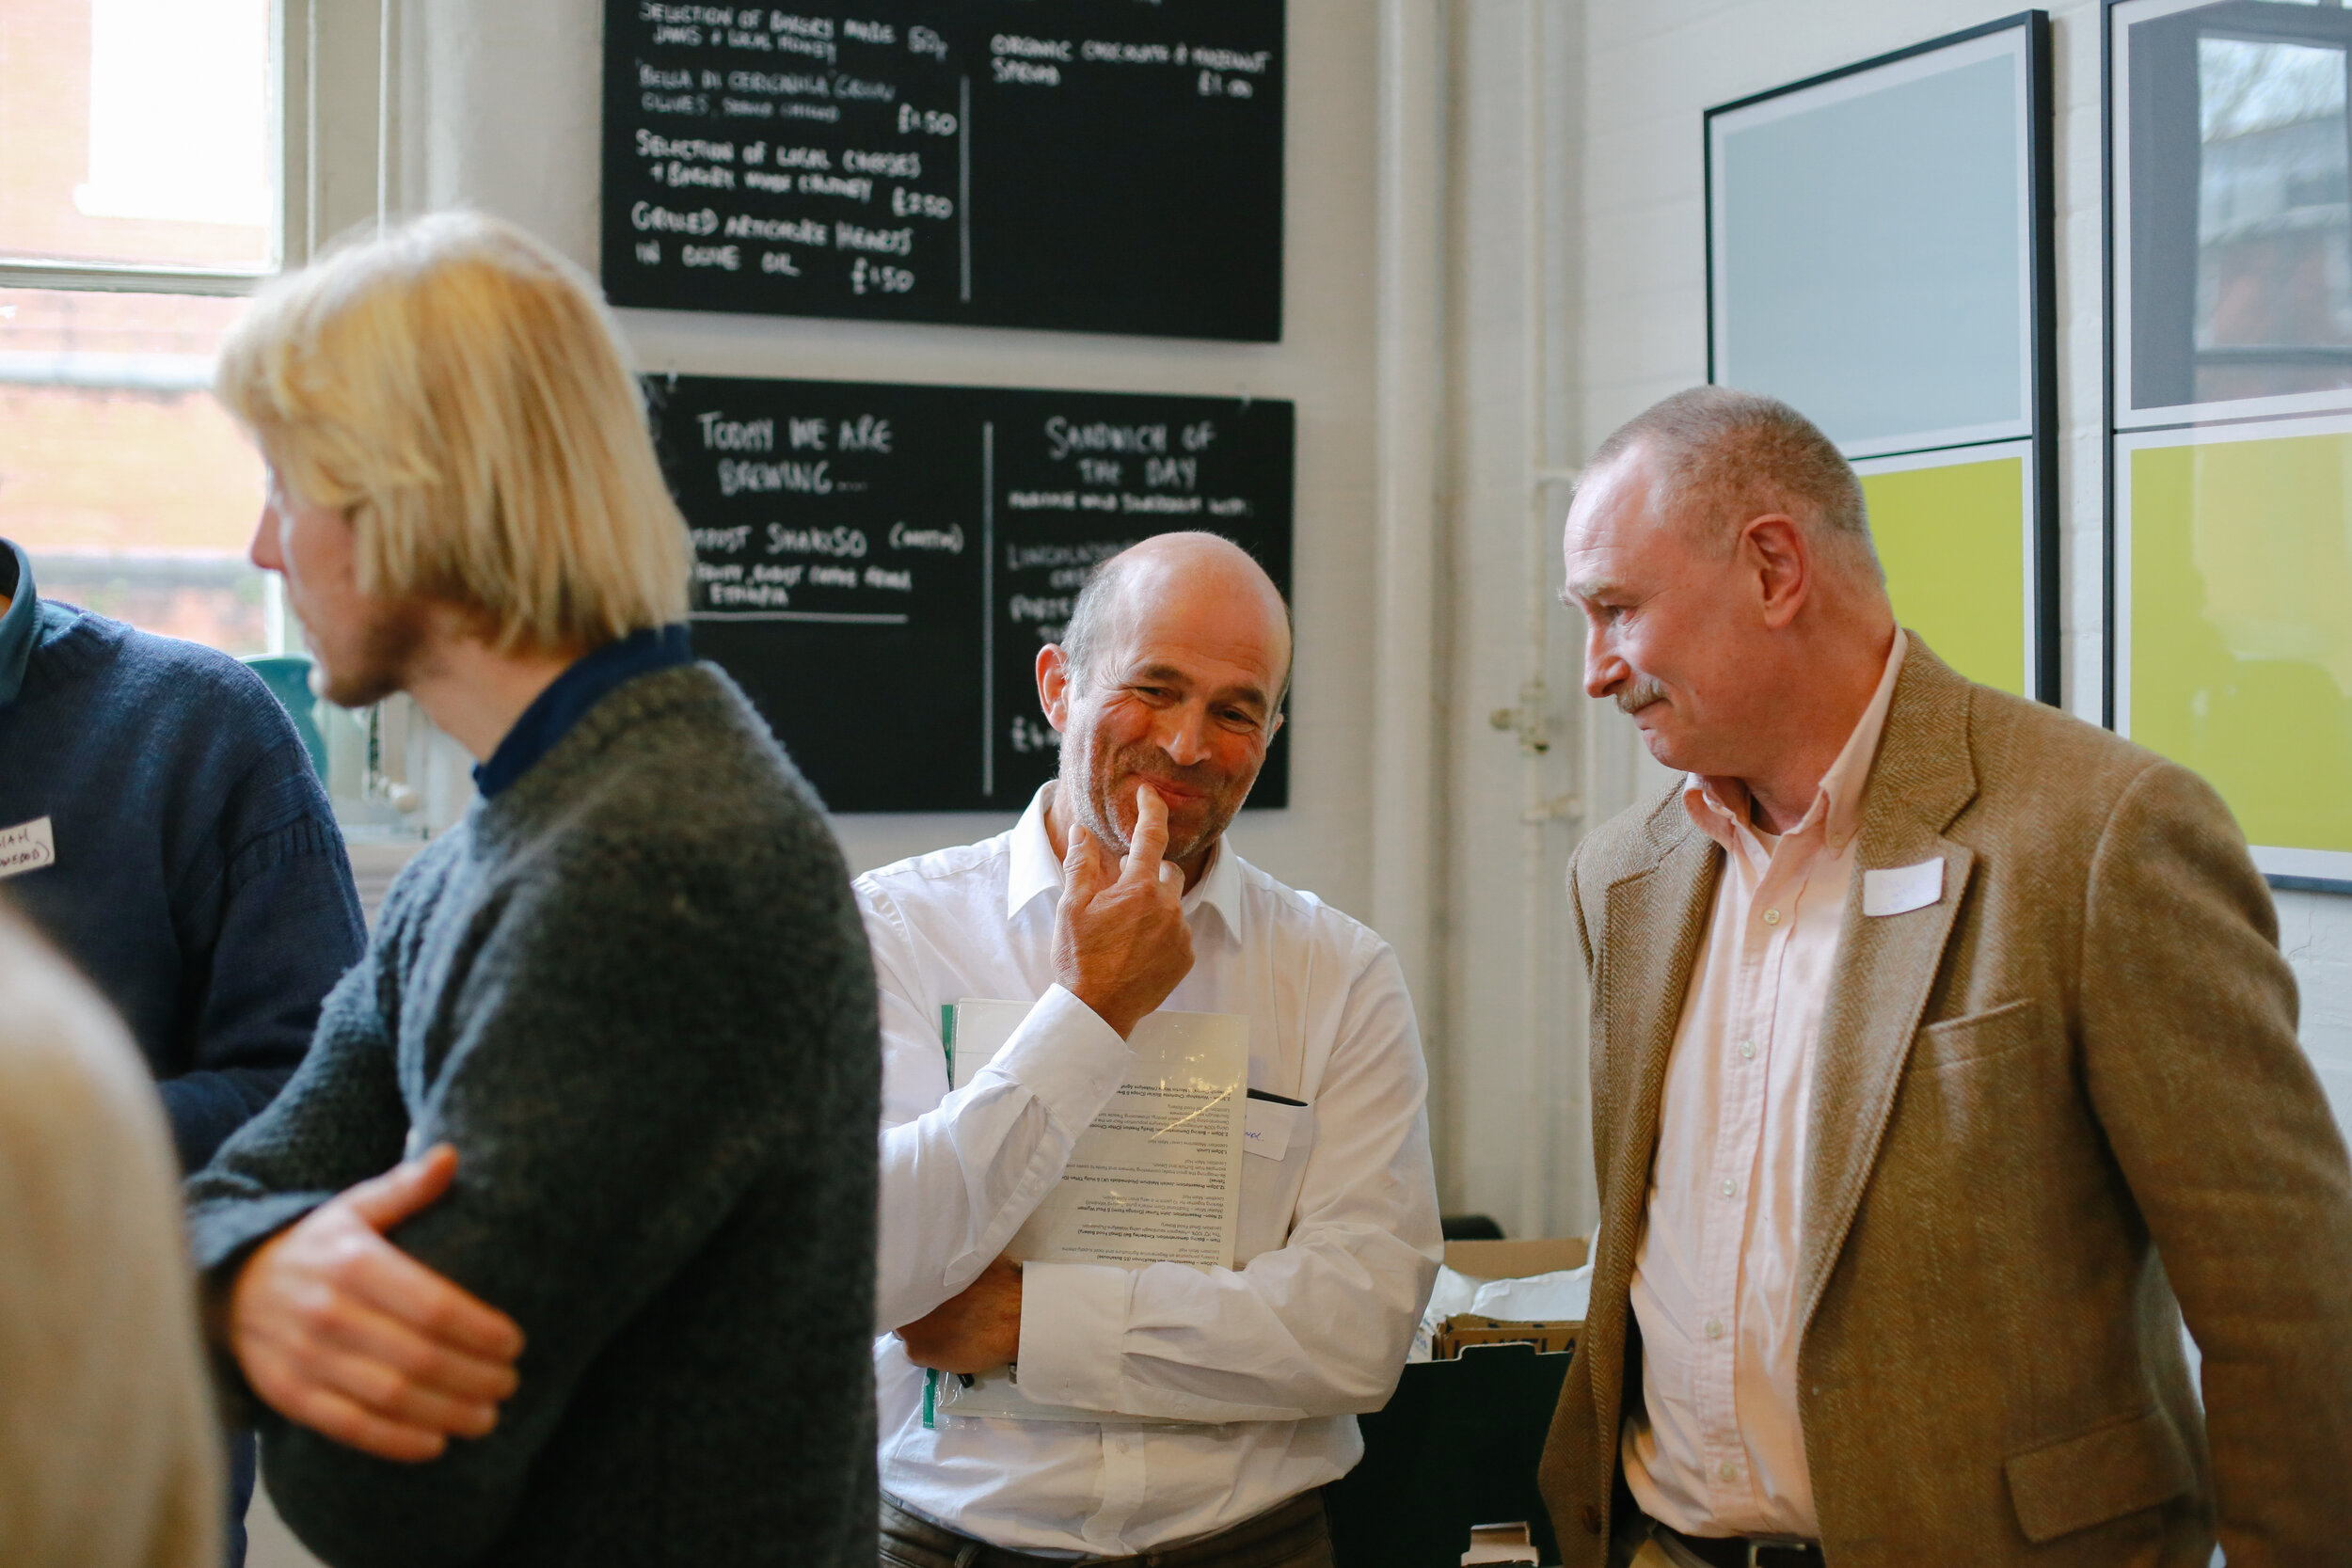 John Turner (Grange Farm: left) is growing YQ for 2018 harvest; to be milled by Paul Wyman (Tuxford Windmill, right). They discussed their approach to shortening the supply chain at the UK Grain Lab conference. Photo: David Severn